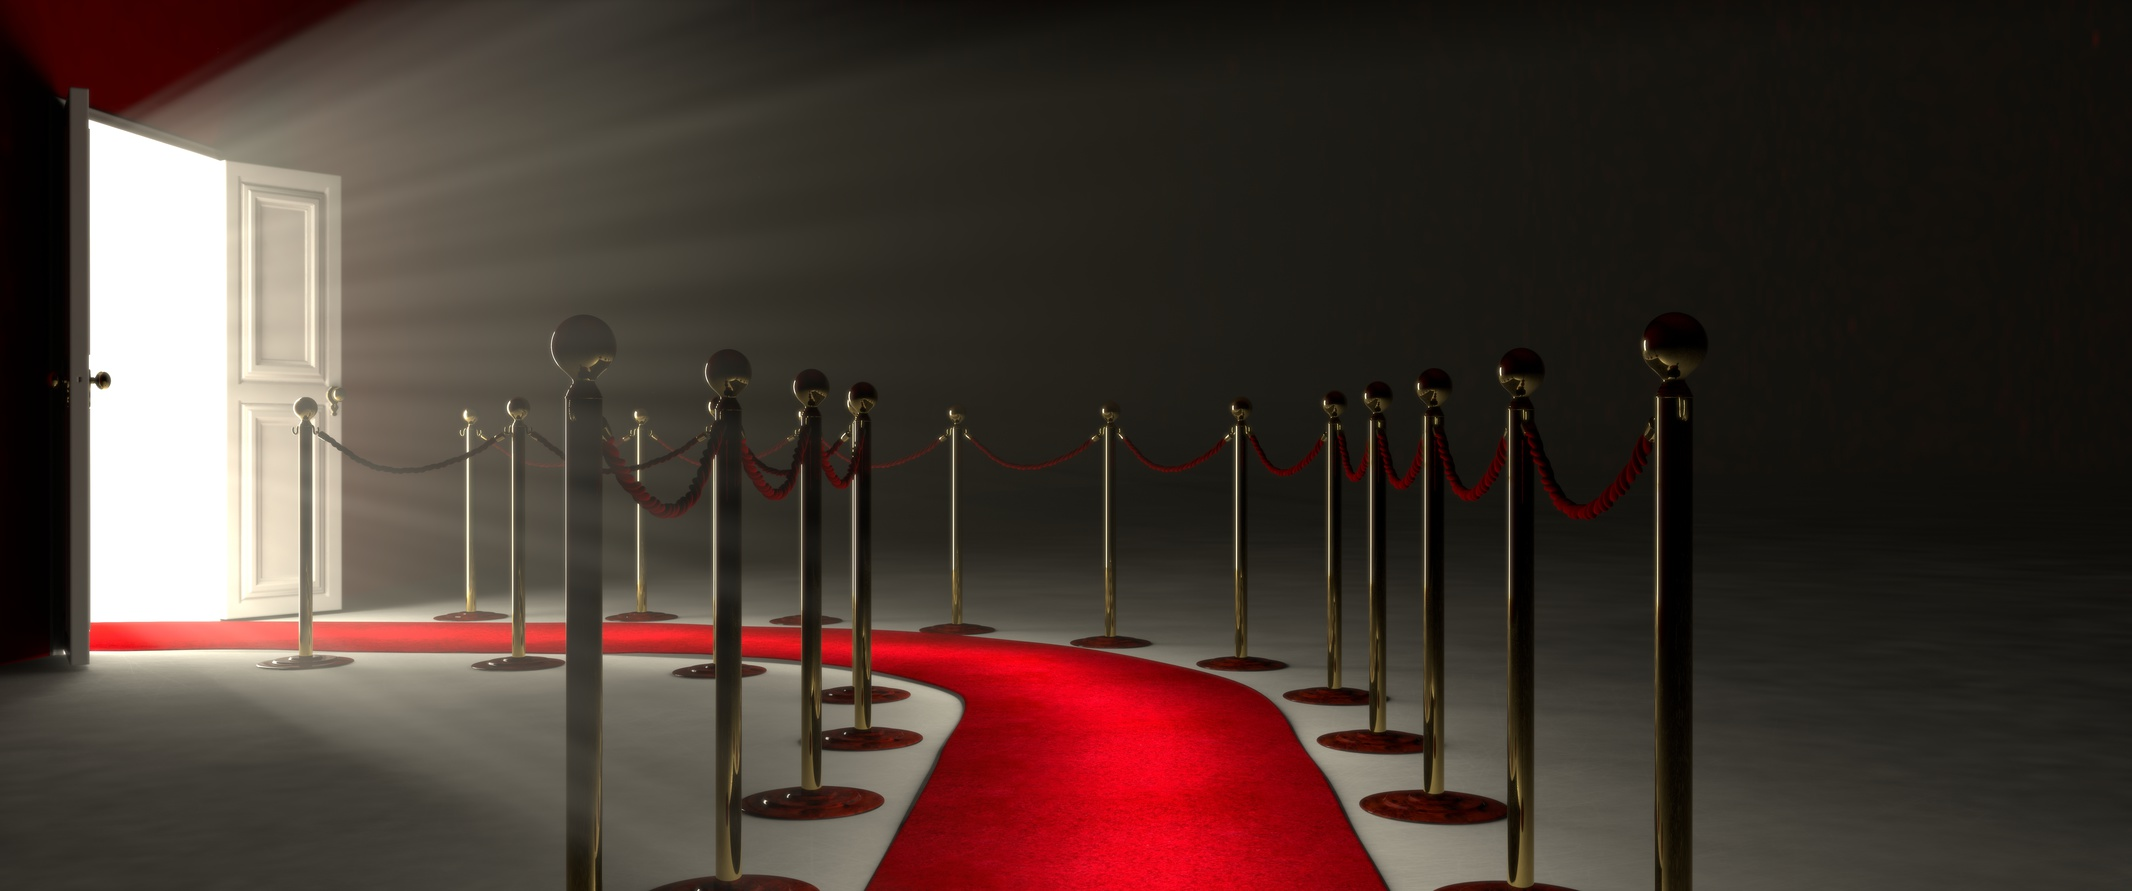 Pathway for triumph is a path delimited by an illuminated red carpet, red velvet rope  barrier and golden supports. The footpath starts in front of you and leads you to a white open door. Beyond the glorious door there is a white illuminated environment that projects its light inside the empty space. The room where I took the image consists in a gray pavement and a dark-red wall. On the left side of the picture there is the door that let you achieve the fame and new opportunities. The majestic door is open and it lets in a lot of light. The light and its volume illuminate the empty room.